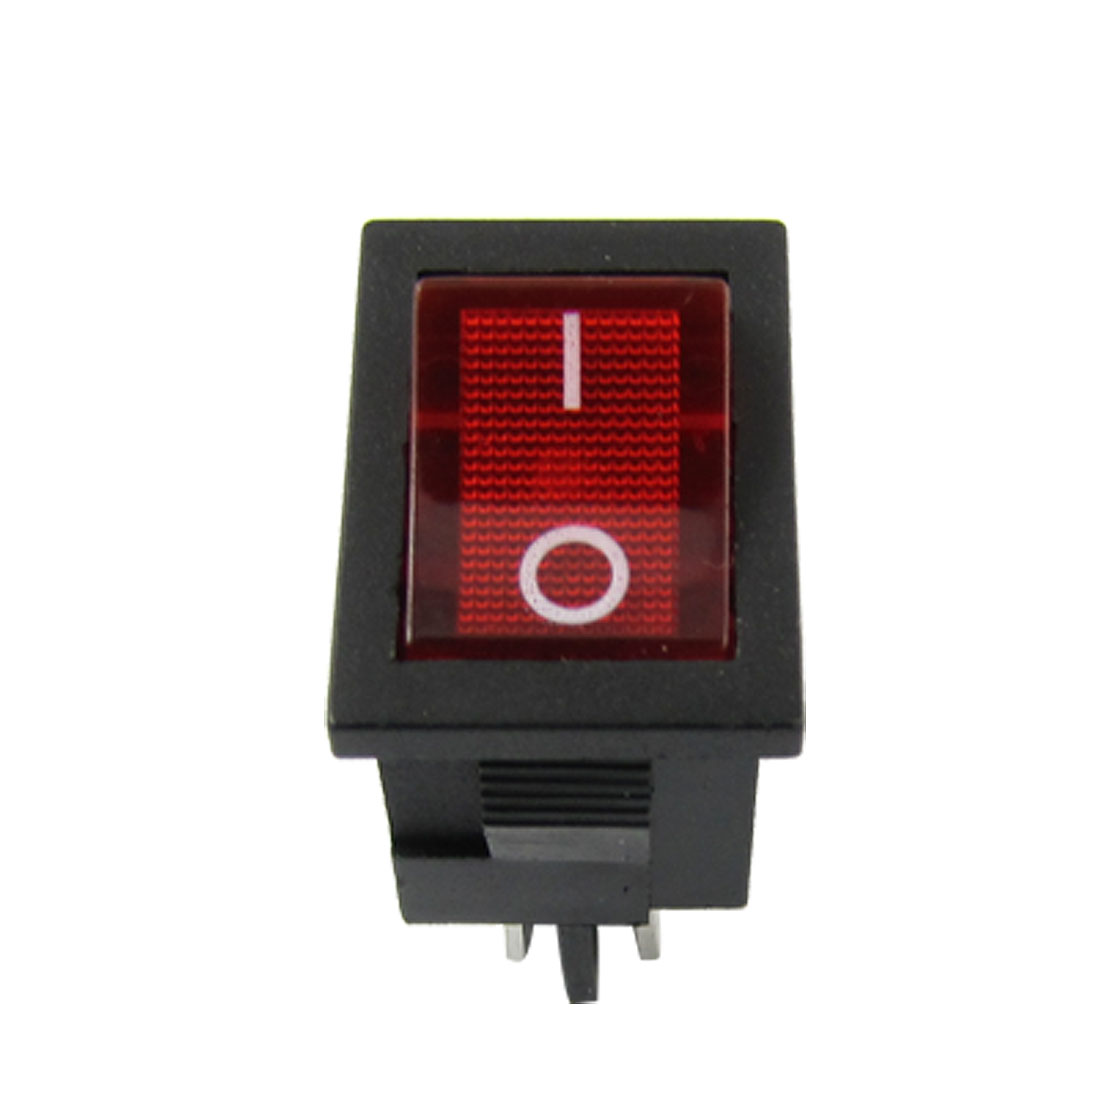 Red Light Illuminated DPST ON-OFF Snap in Boat Rocker Switch 6A/250V 10A/125V AC